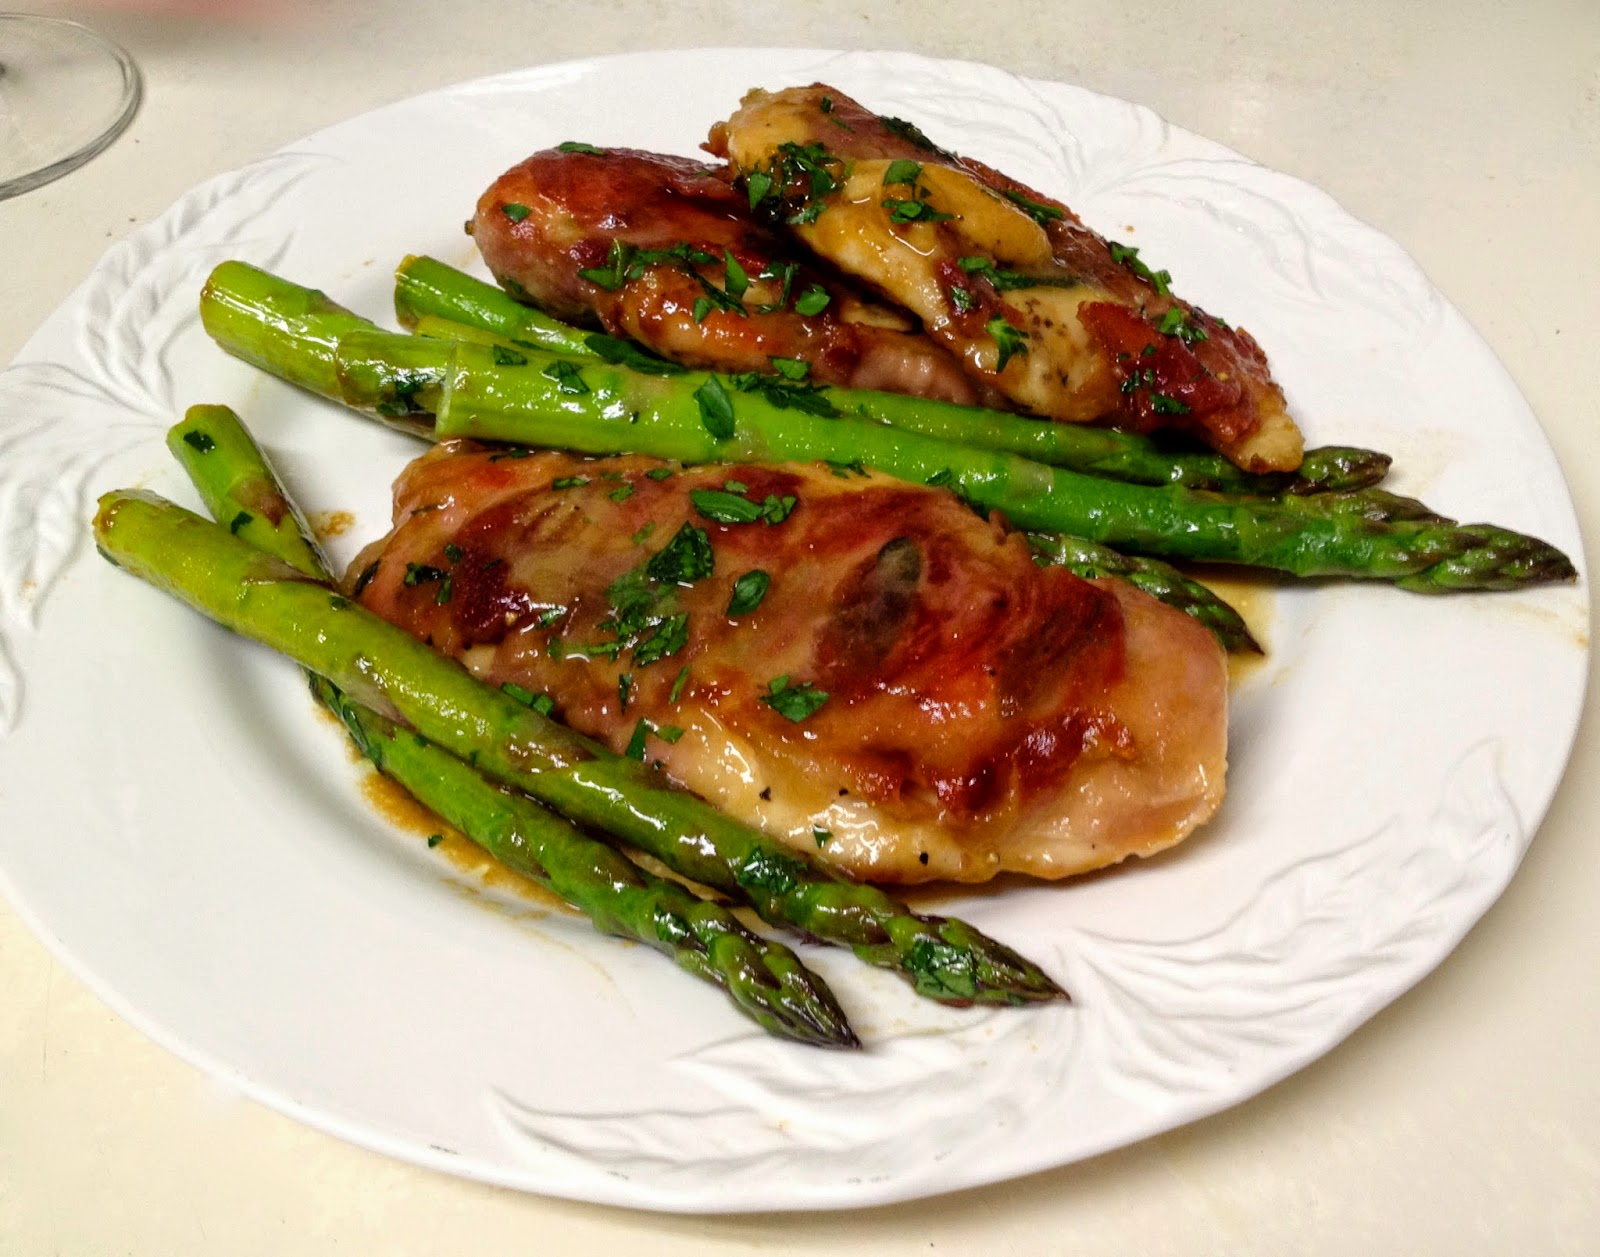 Grilled Chicken Breasts Saltimbocca forecasting